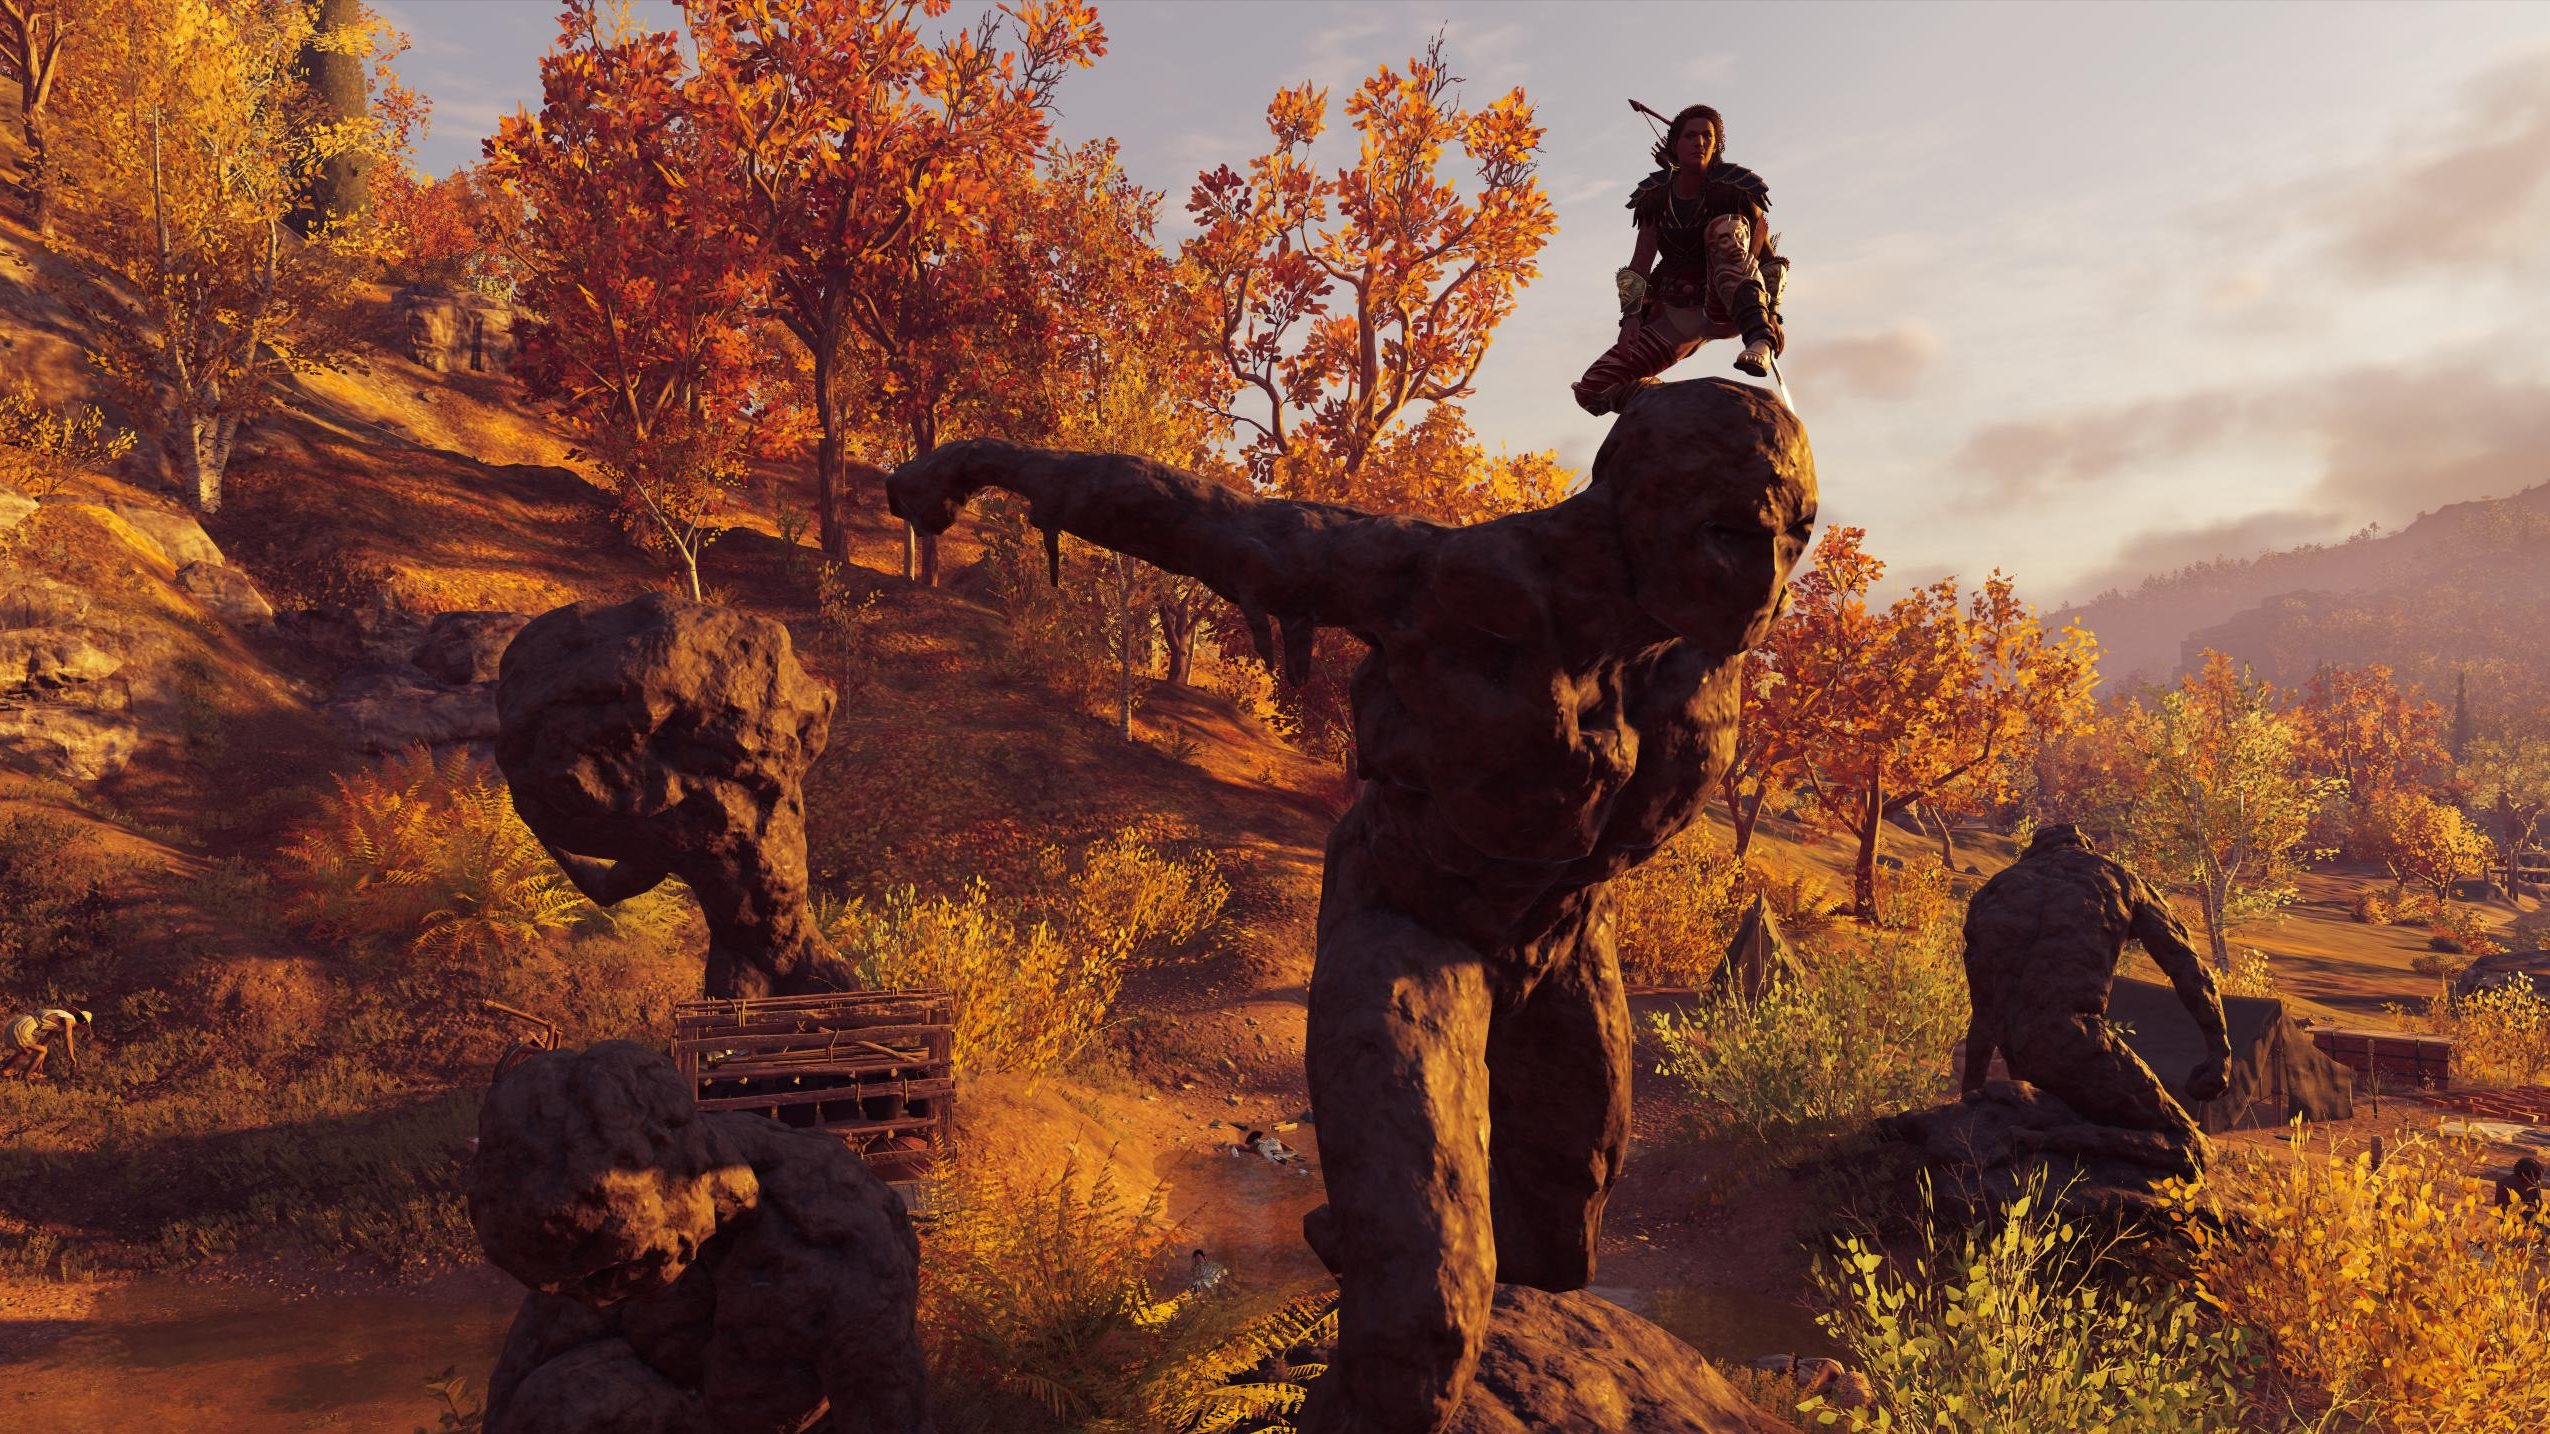 It's now the law that every game should be set in autumn.